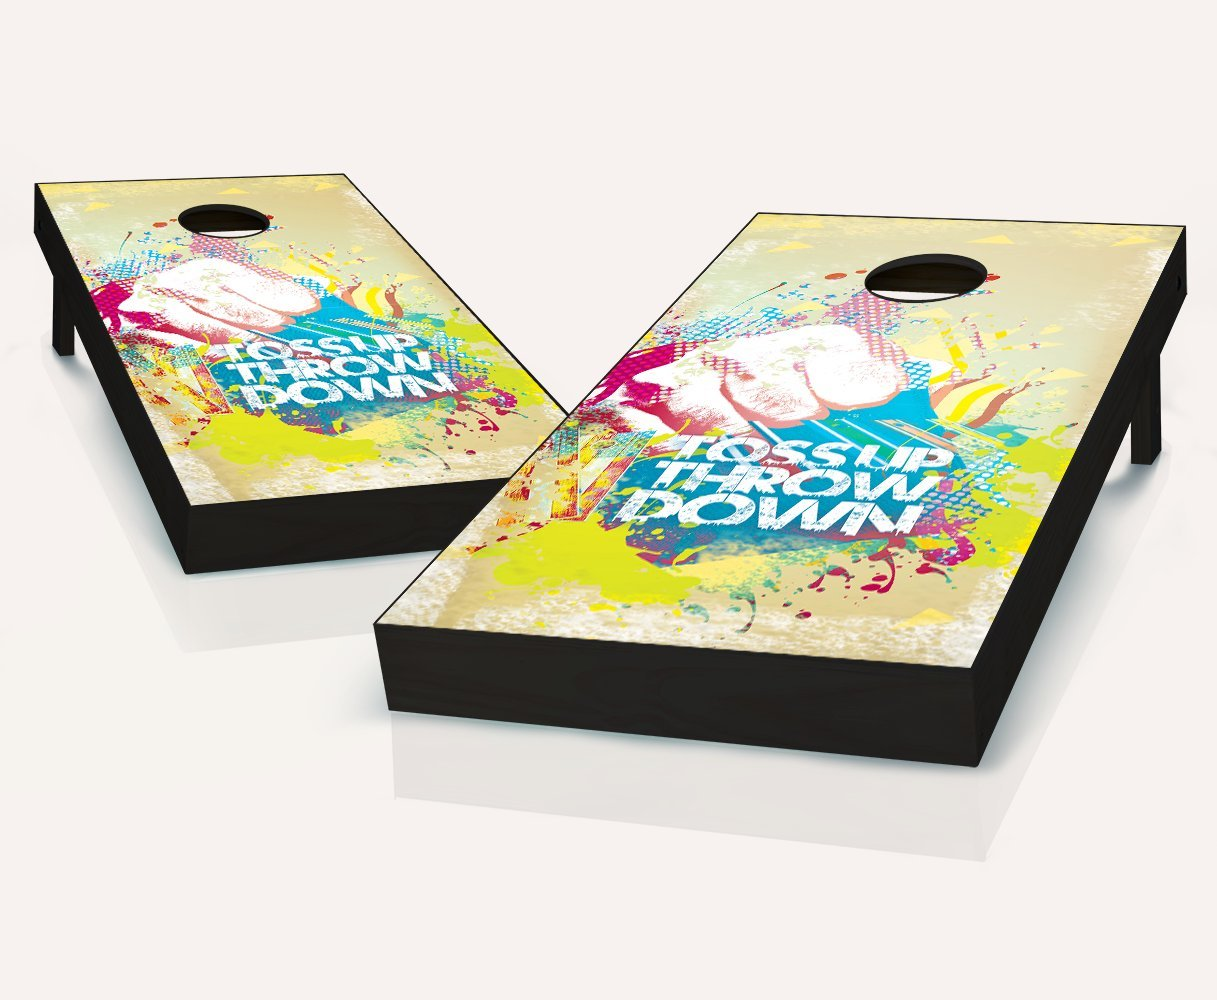 Tailgating Pros Toss Up Throw Down Cornhole Boards withのセット8 Cornhole Bags